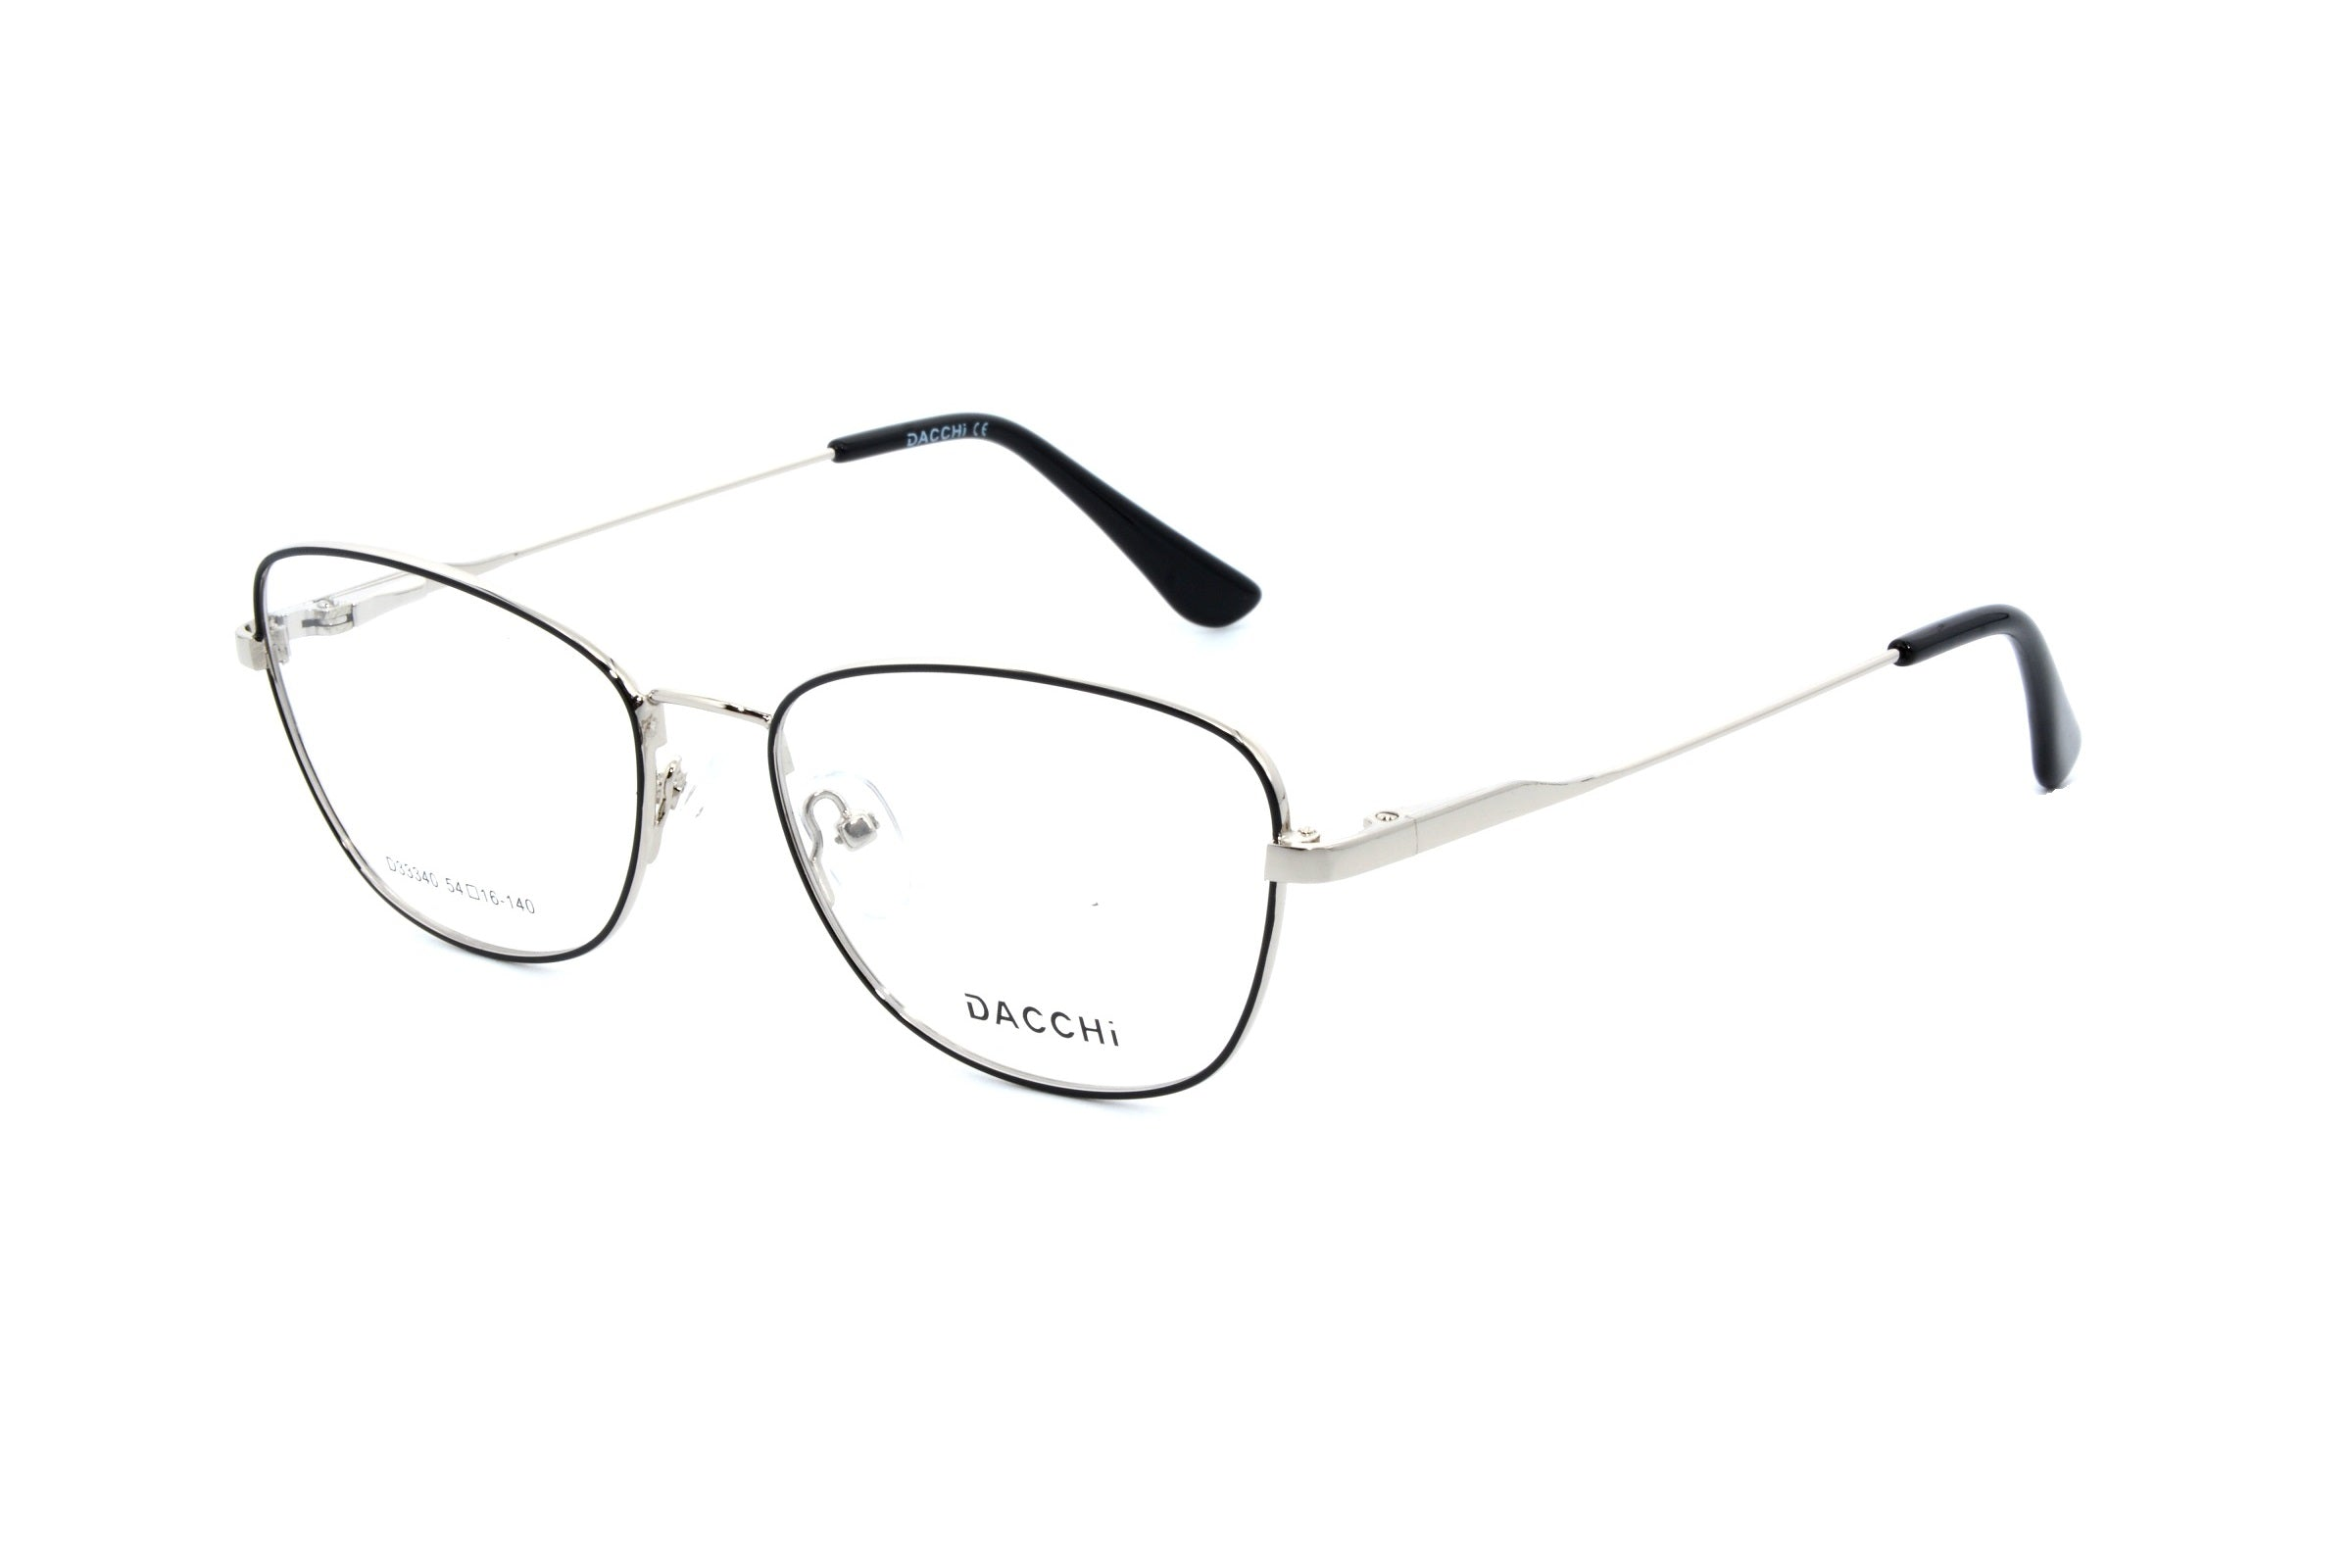 Dacchi eyewear 33340, C1 - Optics Trading